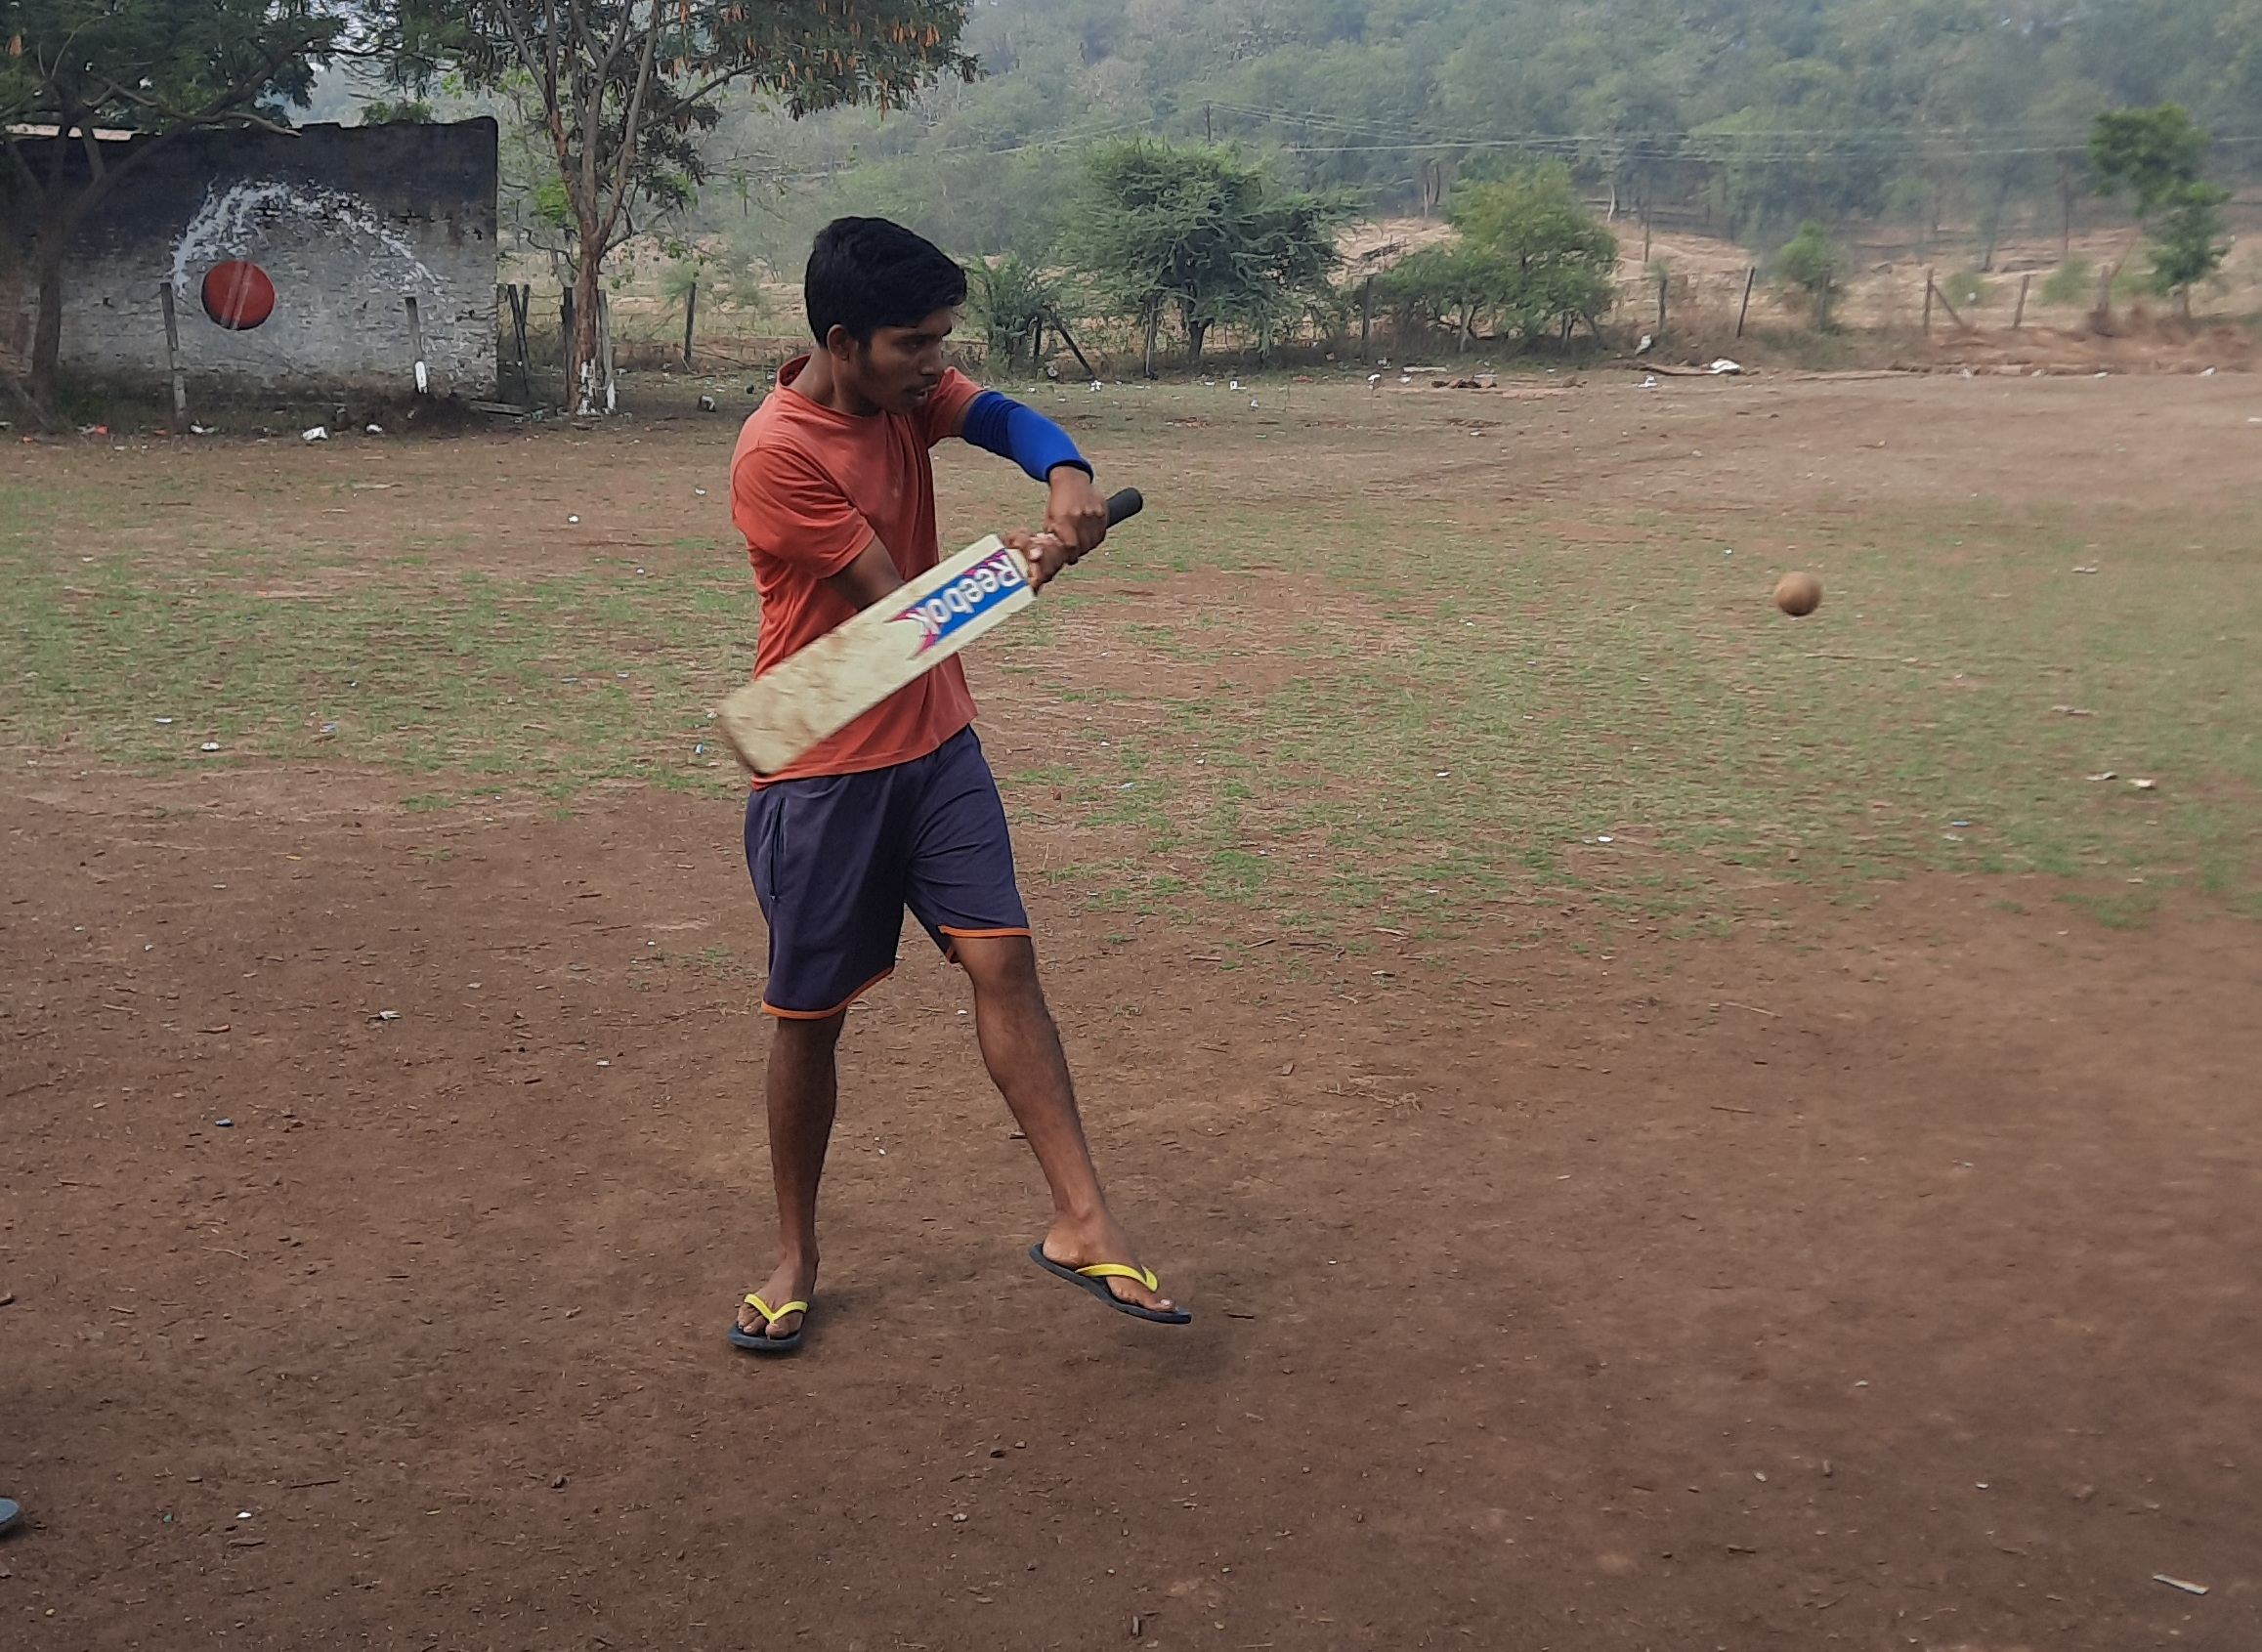 Batsman about to hit a ball with bat